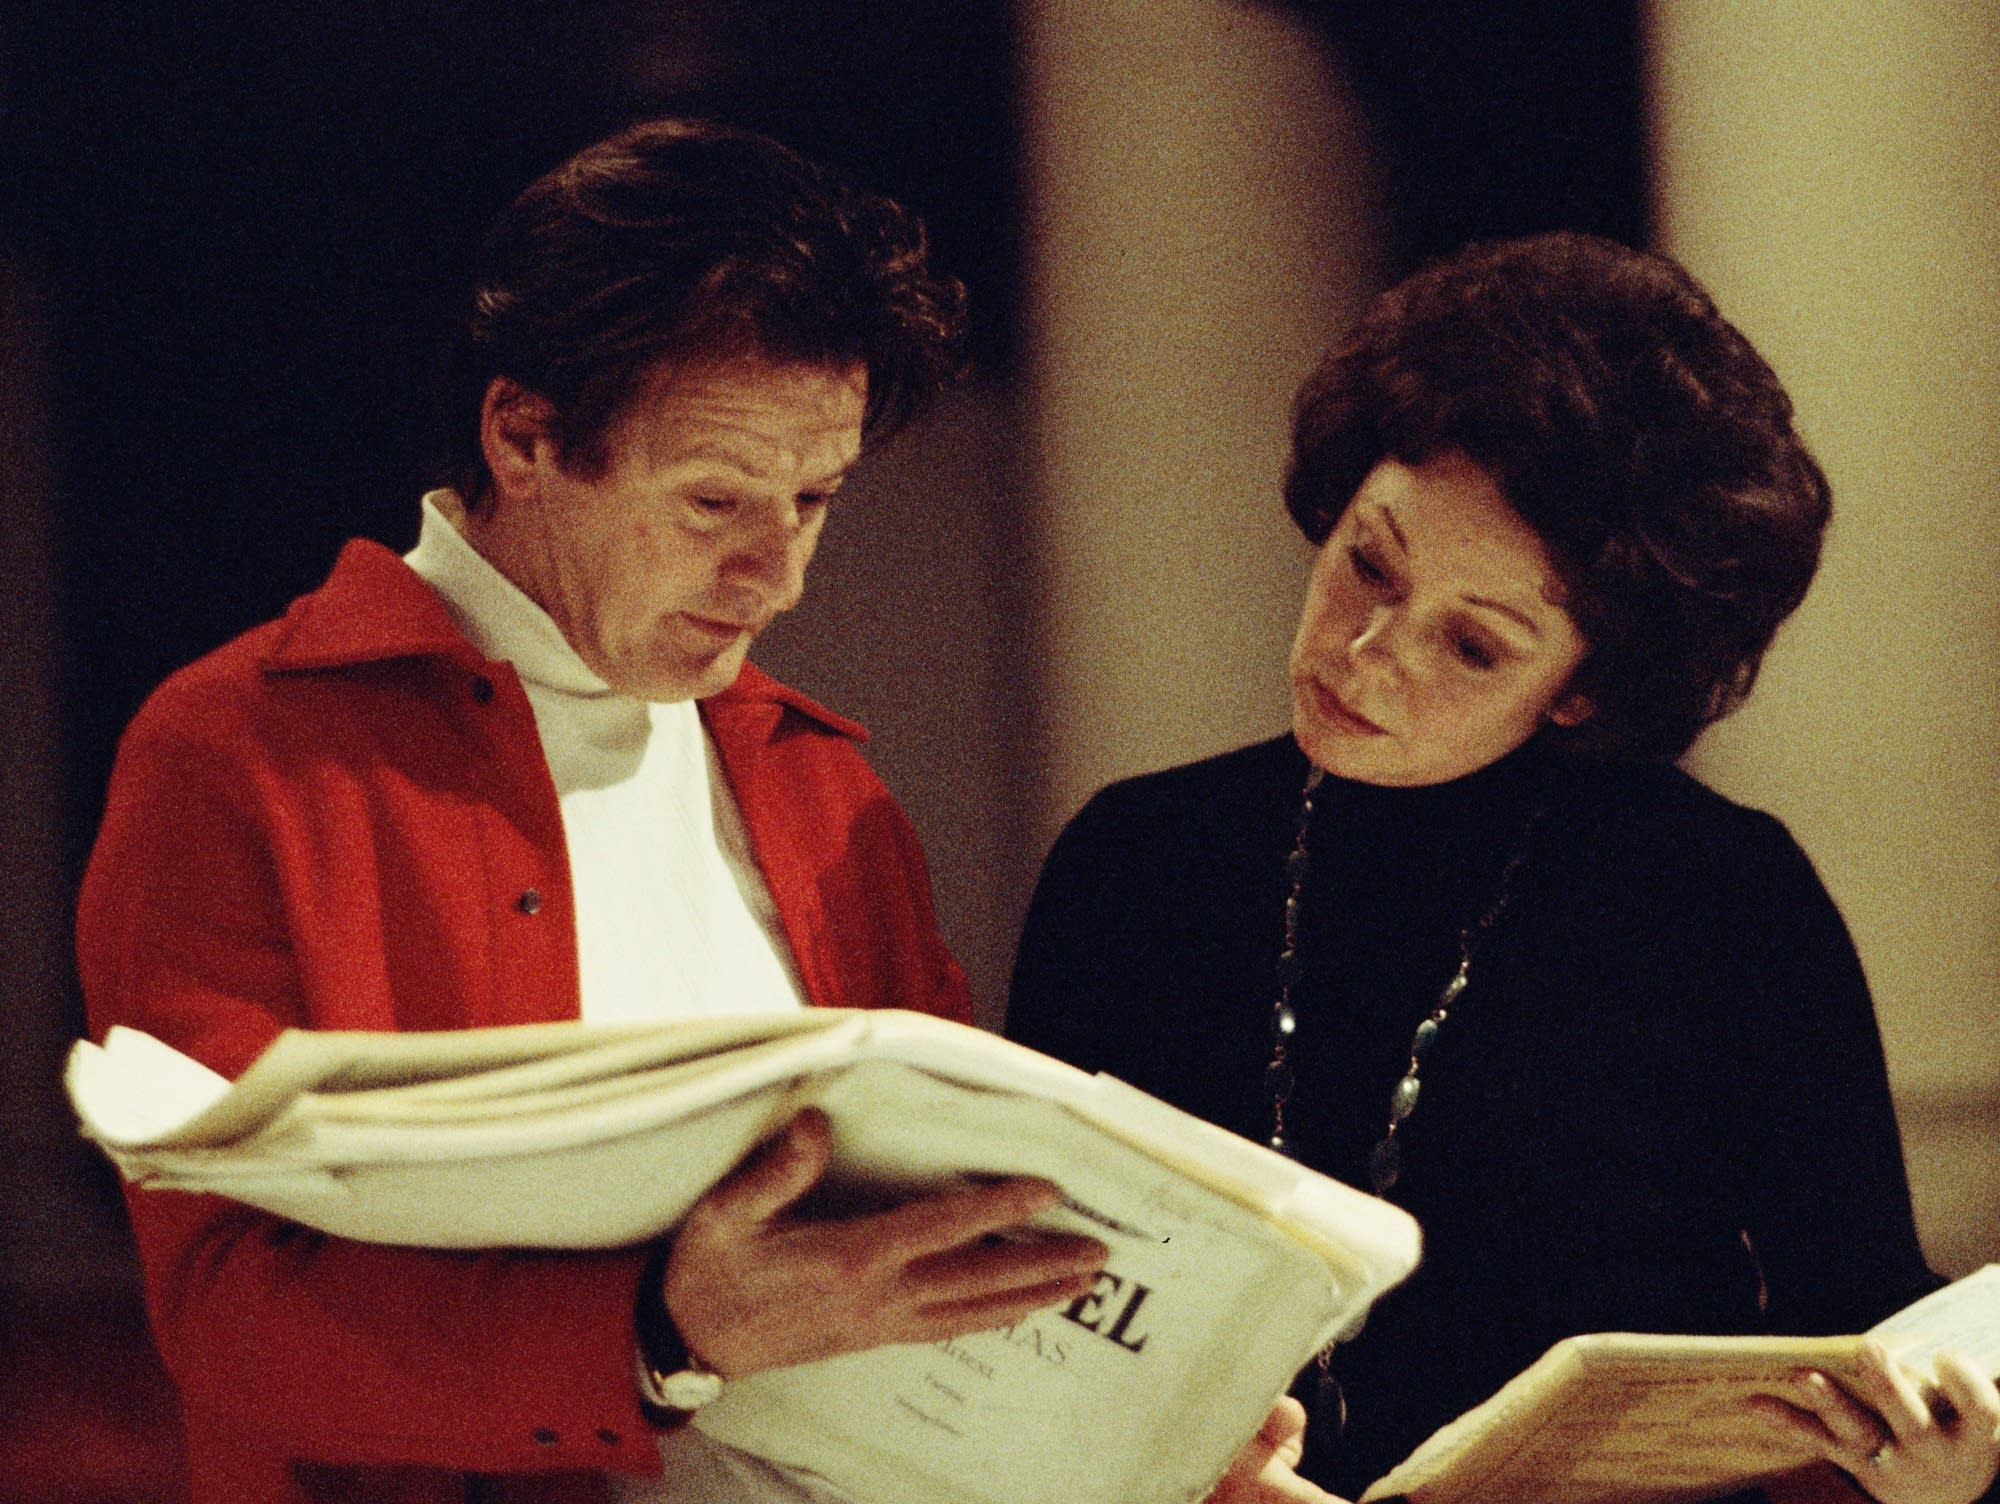 Neville Marriner, soprano Sheila Armstrong